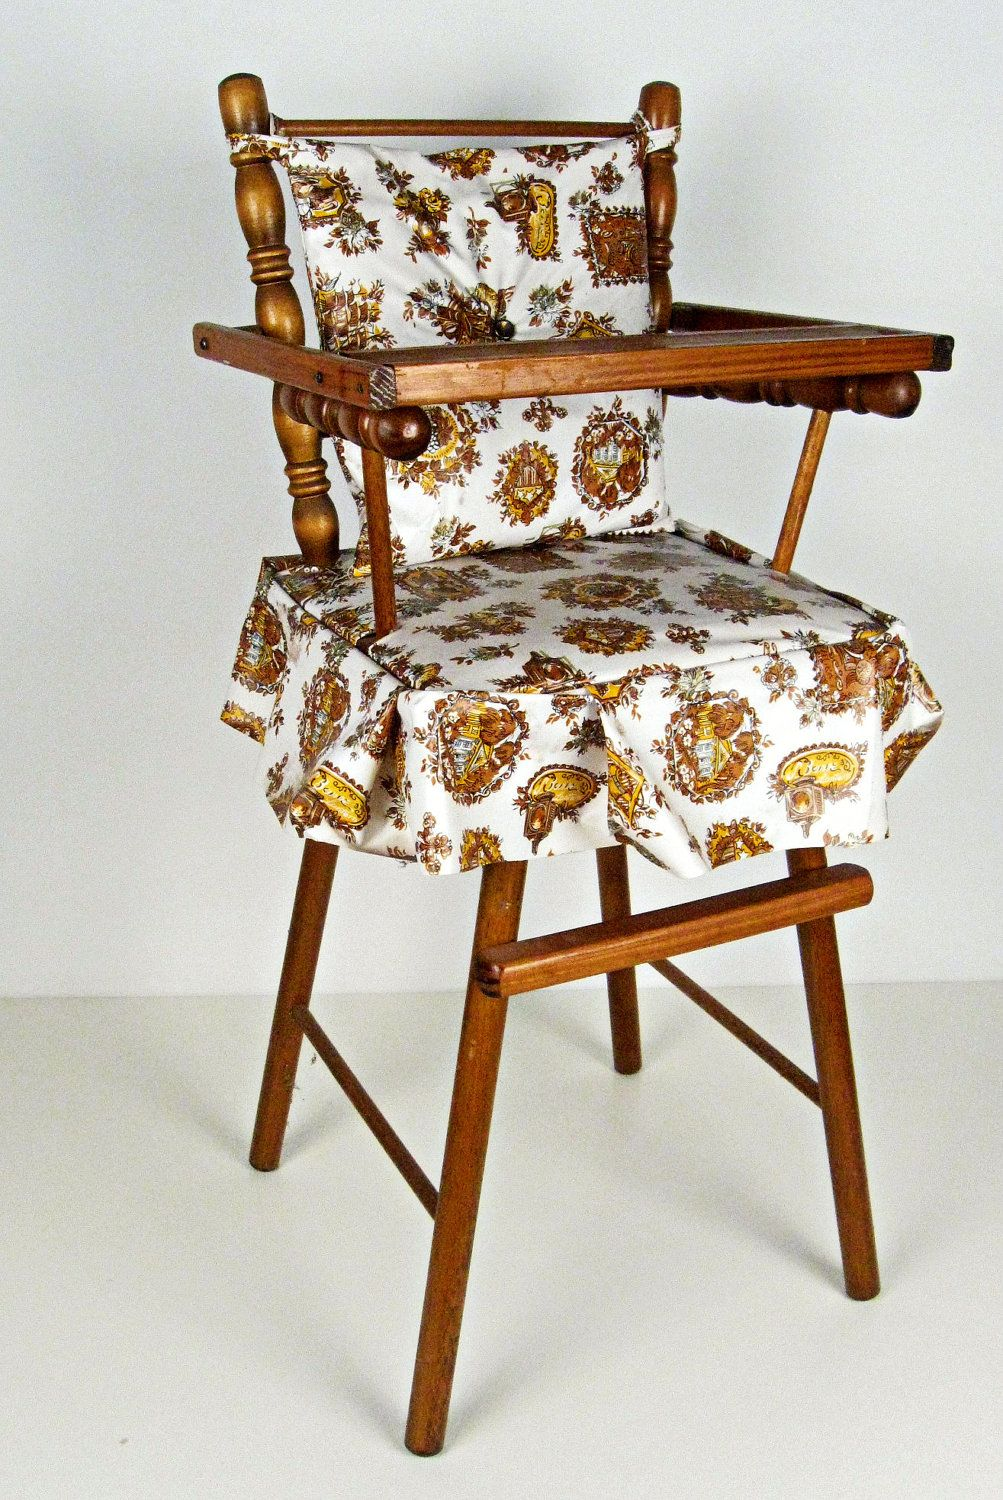 Vintage Wooden Doll High Chair 1970s 35 00 Via Etsy With